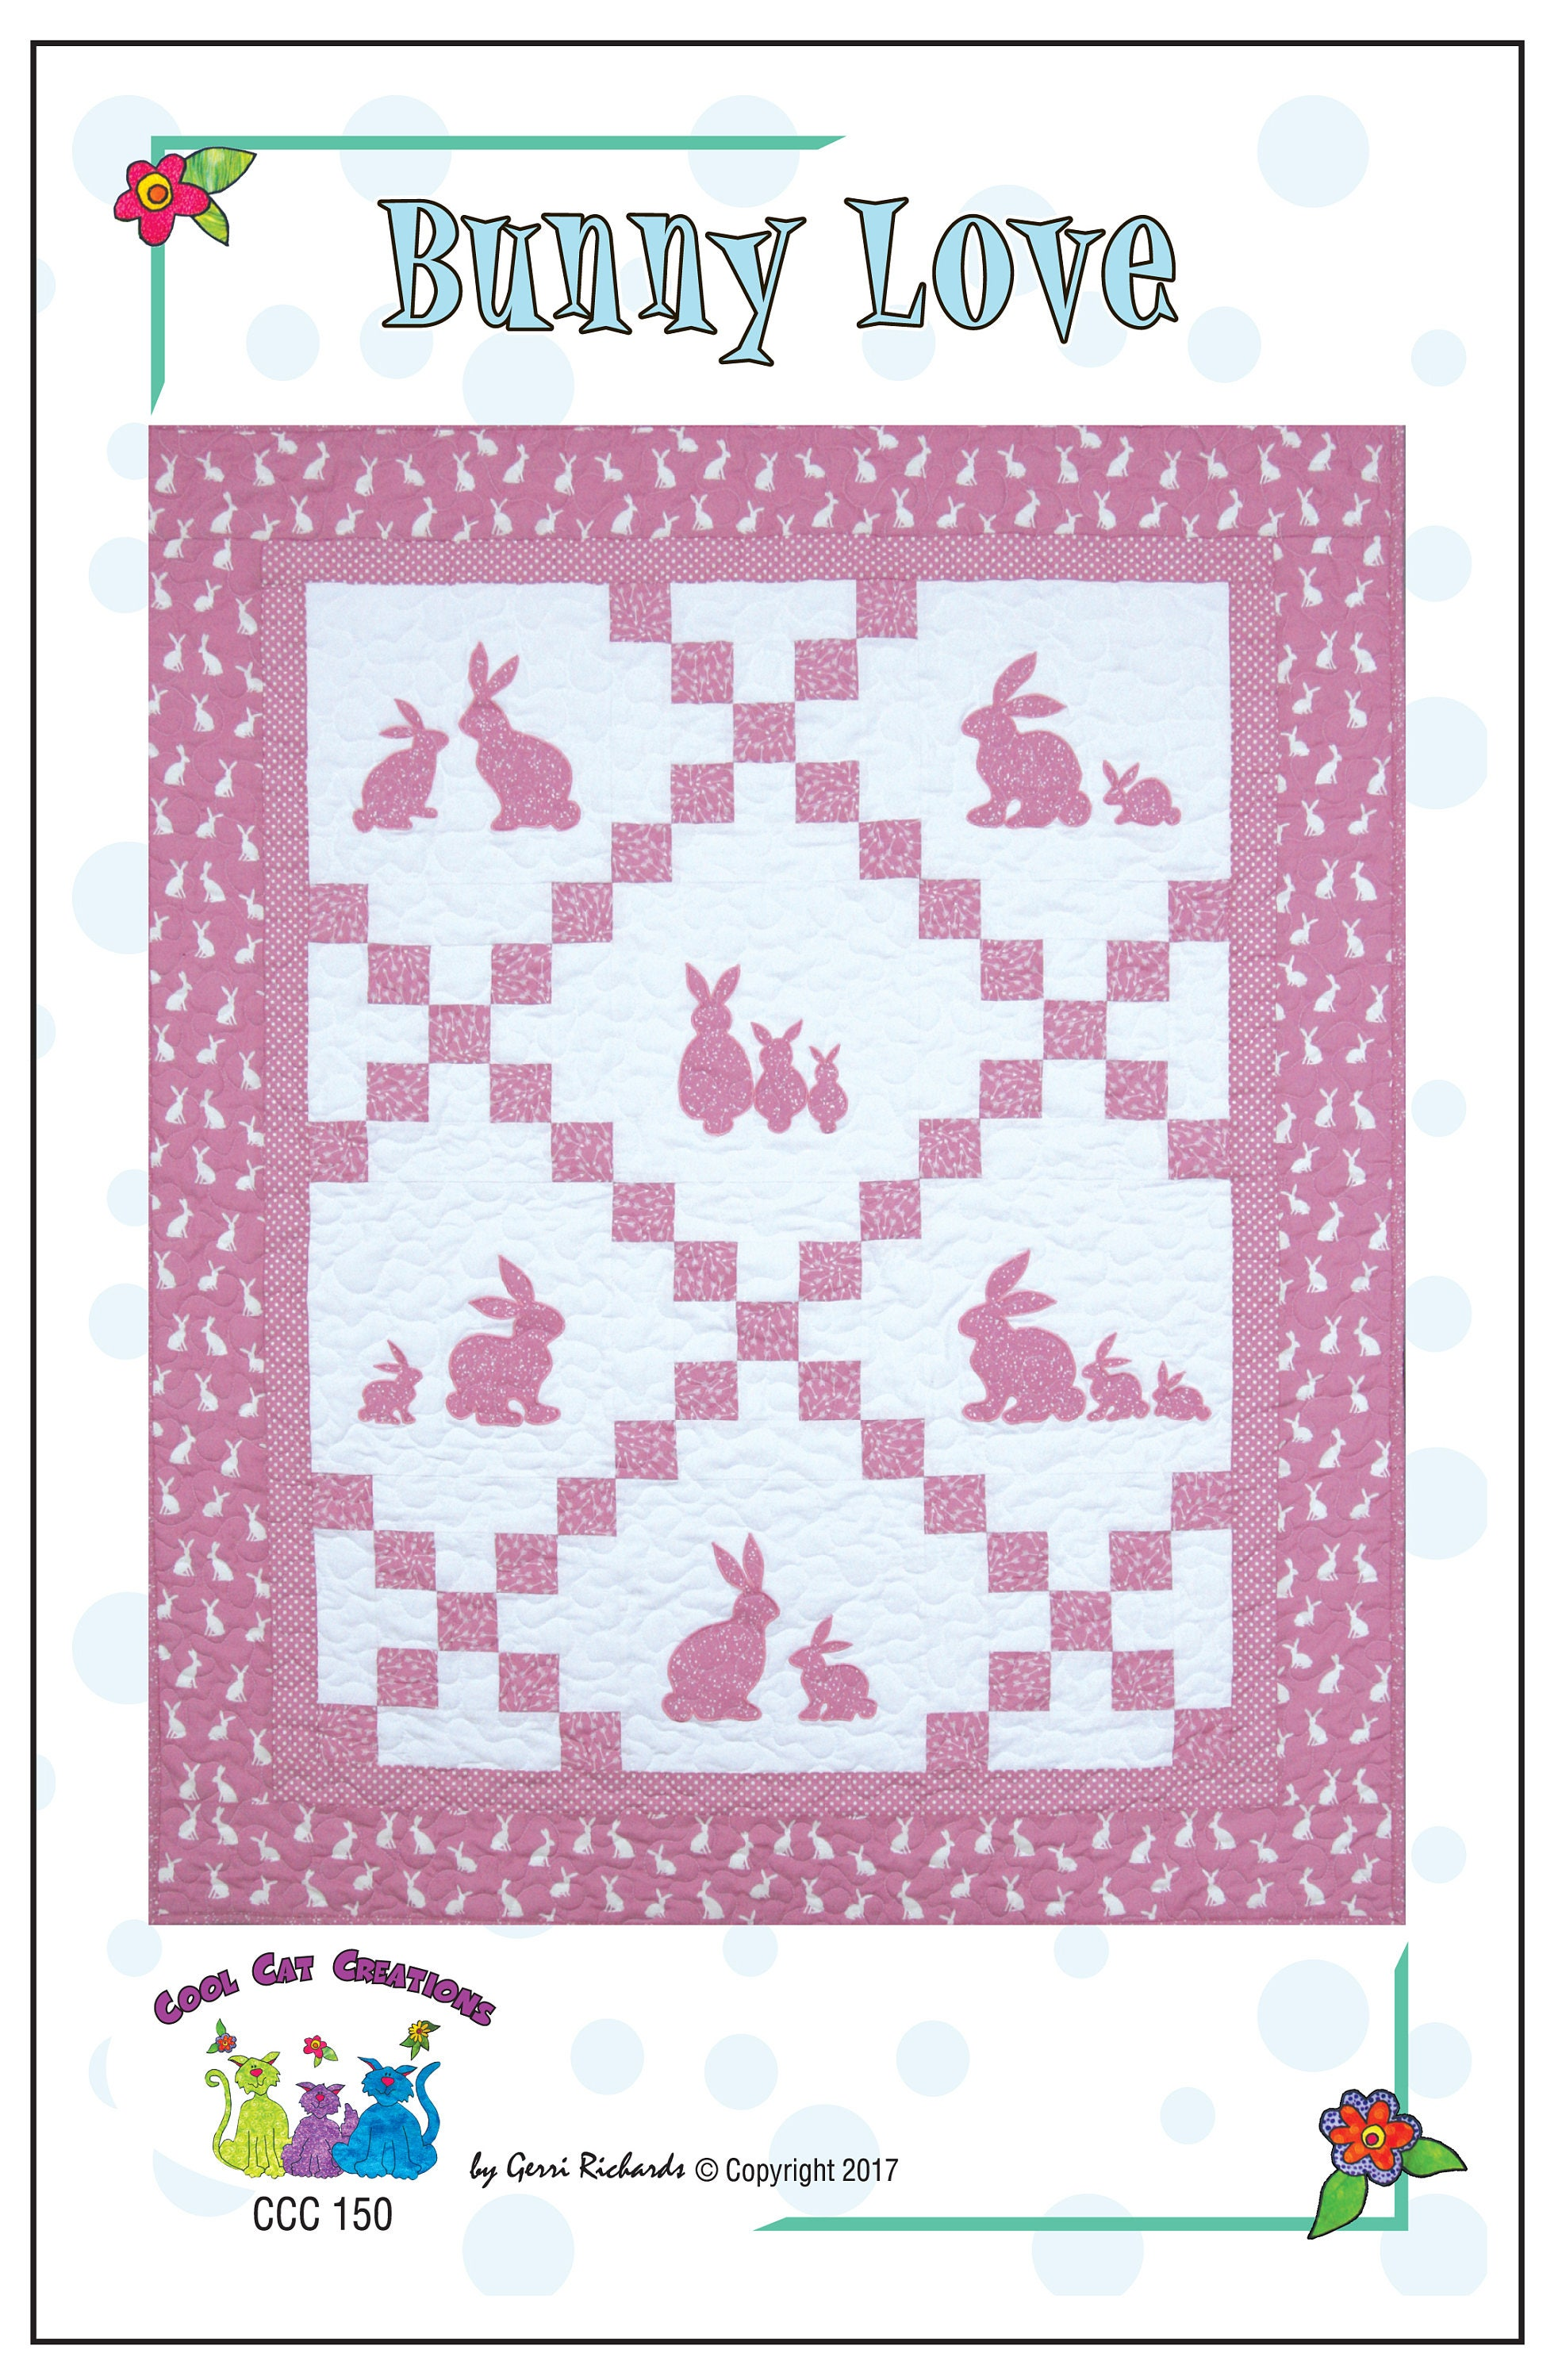 Bunny Love Quilt Pattern Sizes For Baby Crib and Single Quilt | Etsy